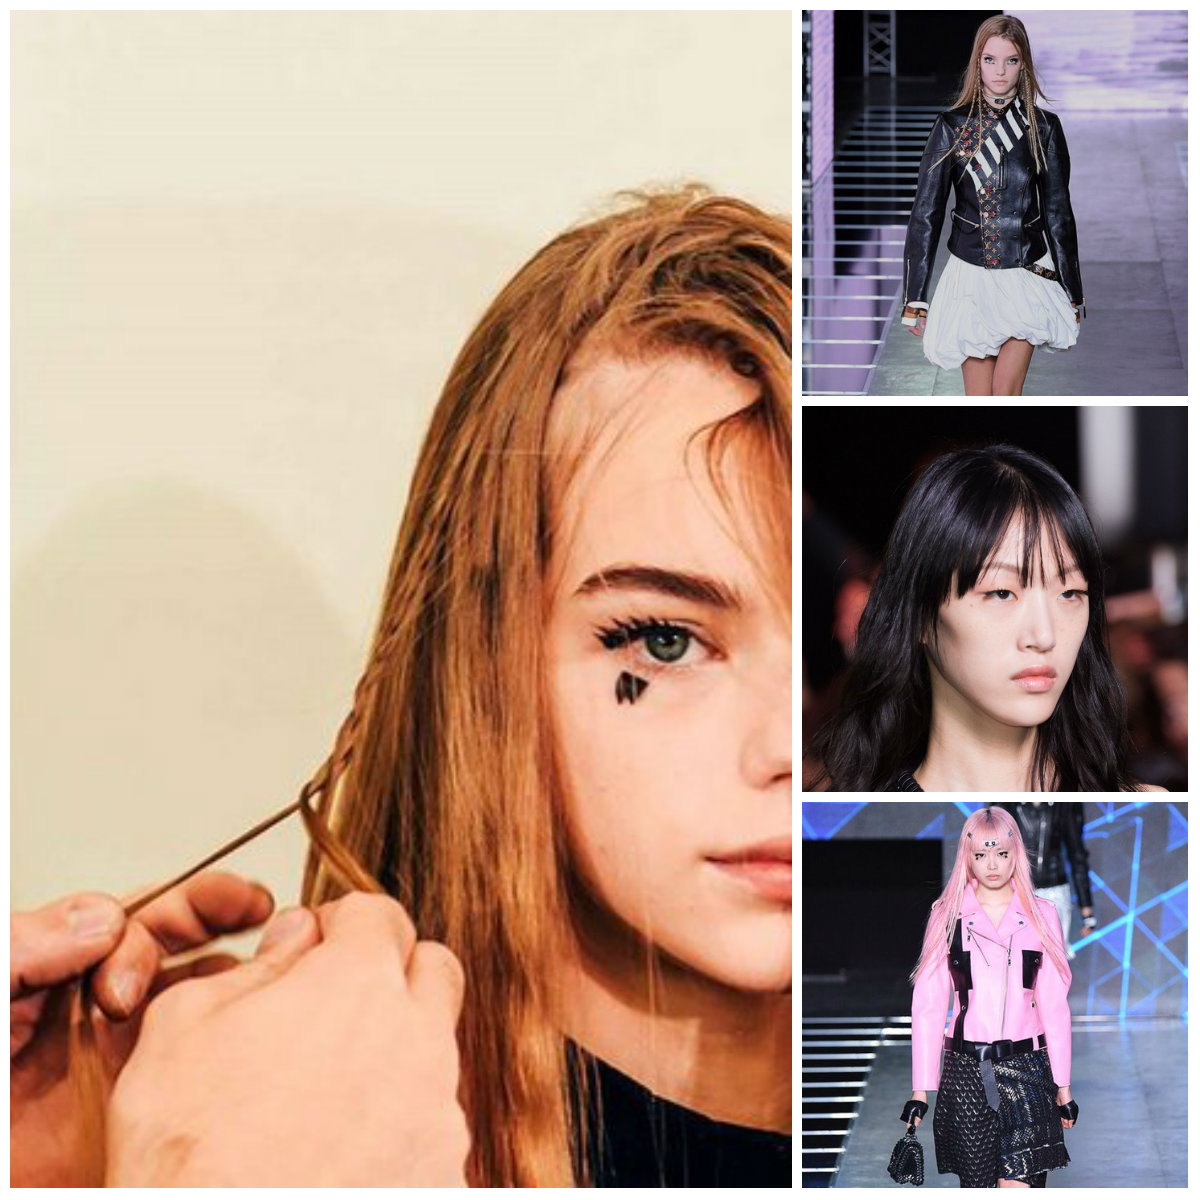 LOUIS VUITTON'S 2016 spring hairstyles